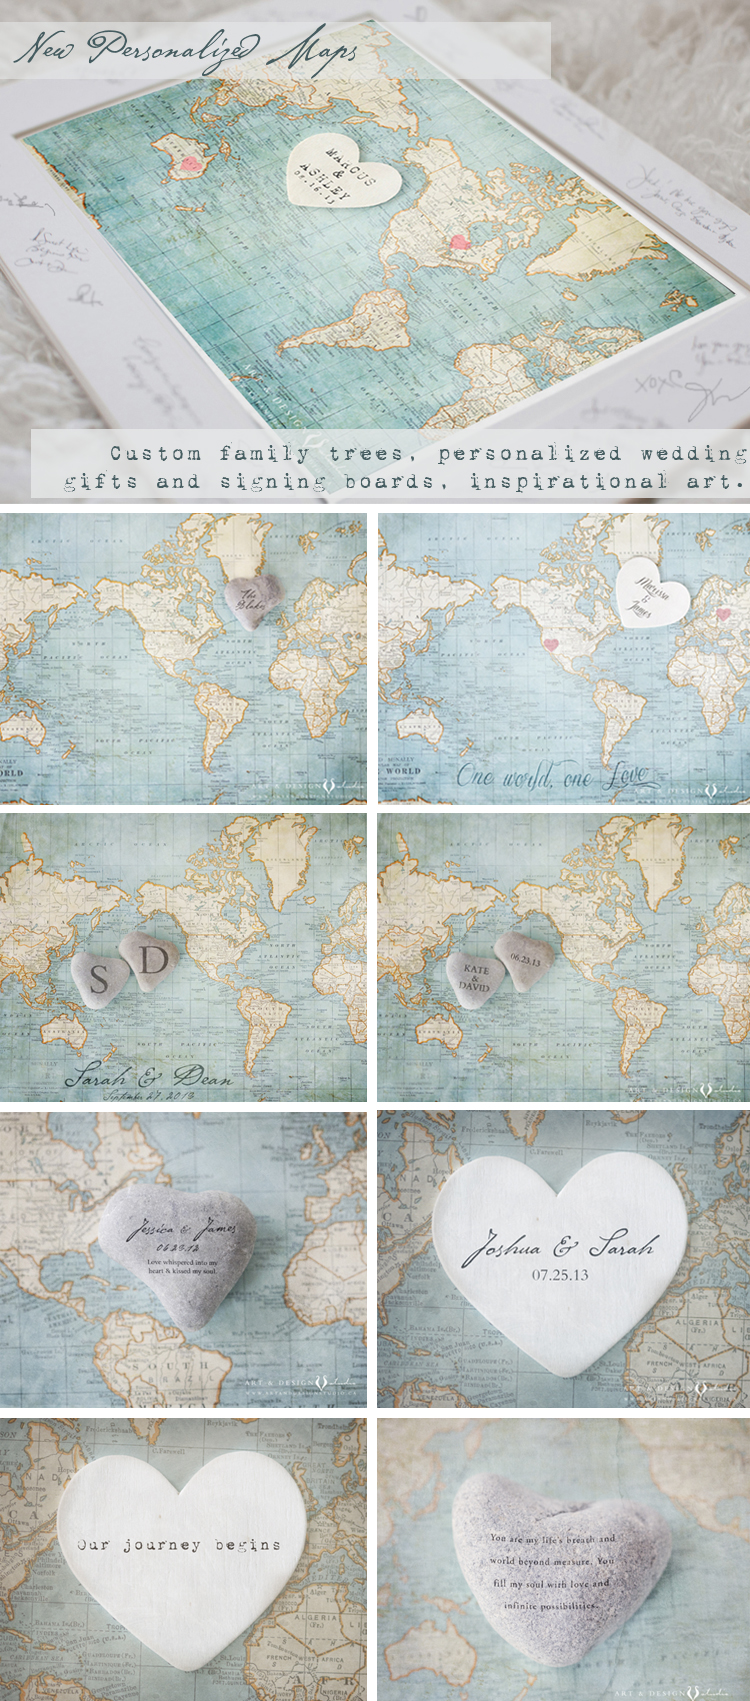 Map Art Wedding Gift : Wedding Maps, Family Name Art Personalized-Wedding-Gift Toronto ...